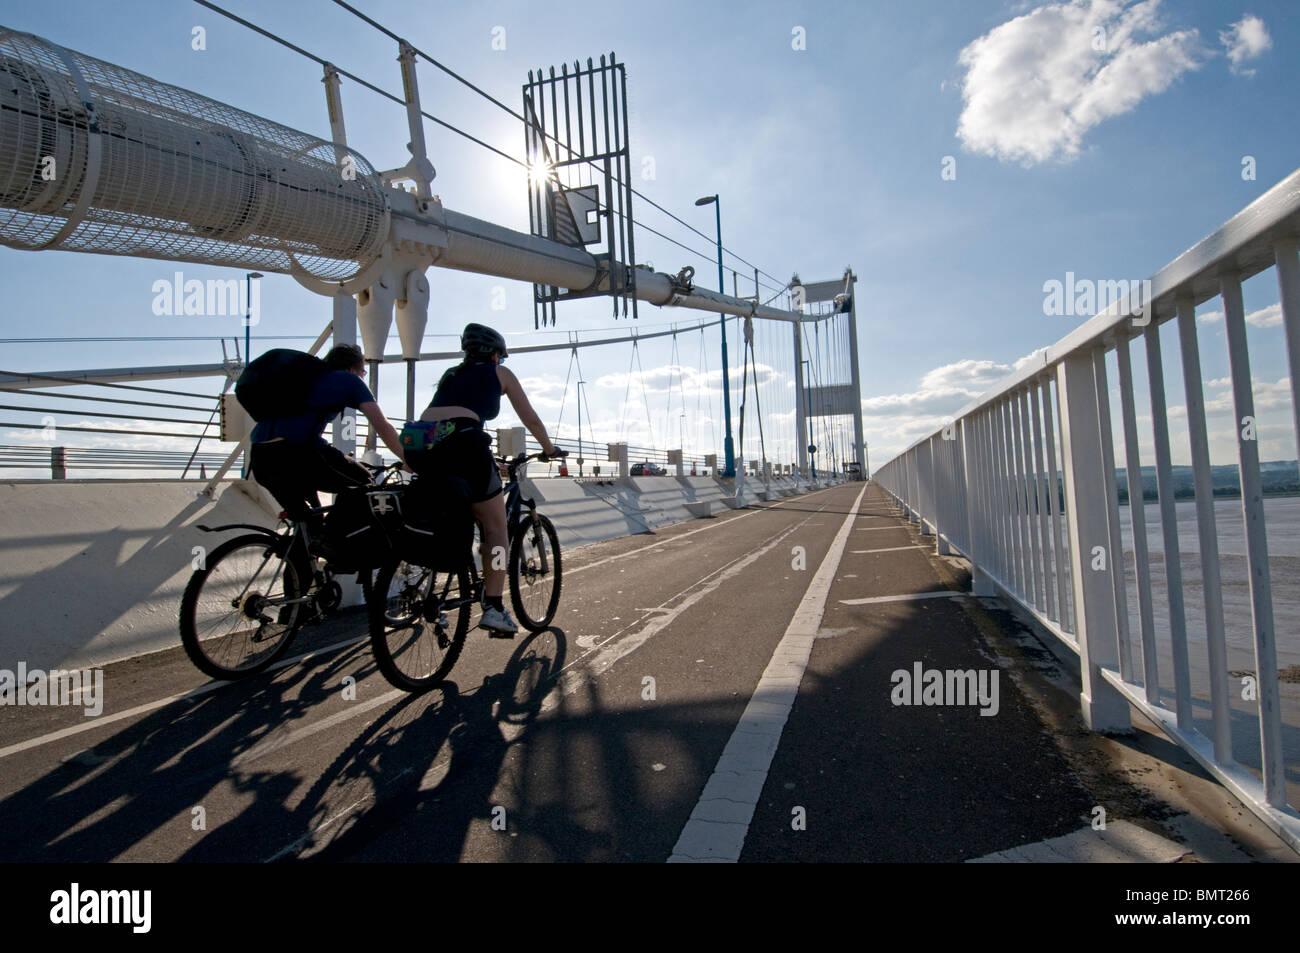 Two cyclists crossing the old Severn Bridge from England to Wales - Stock Image